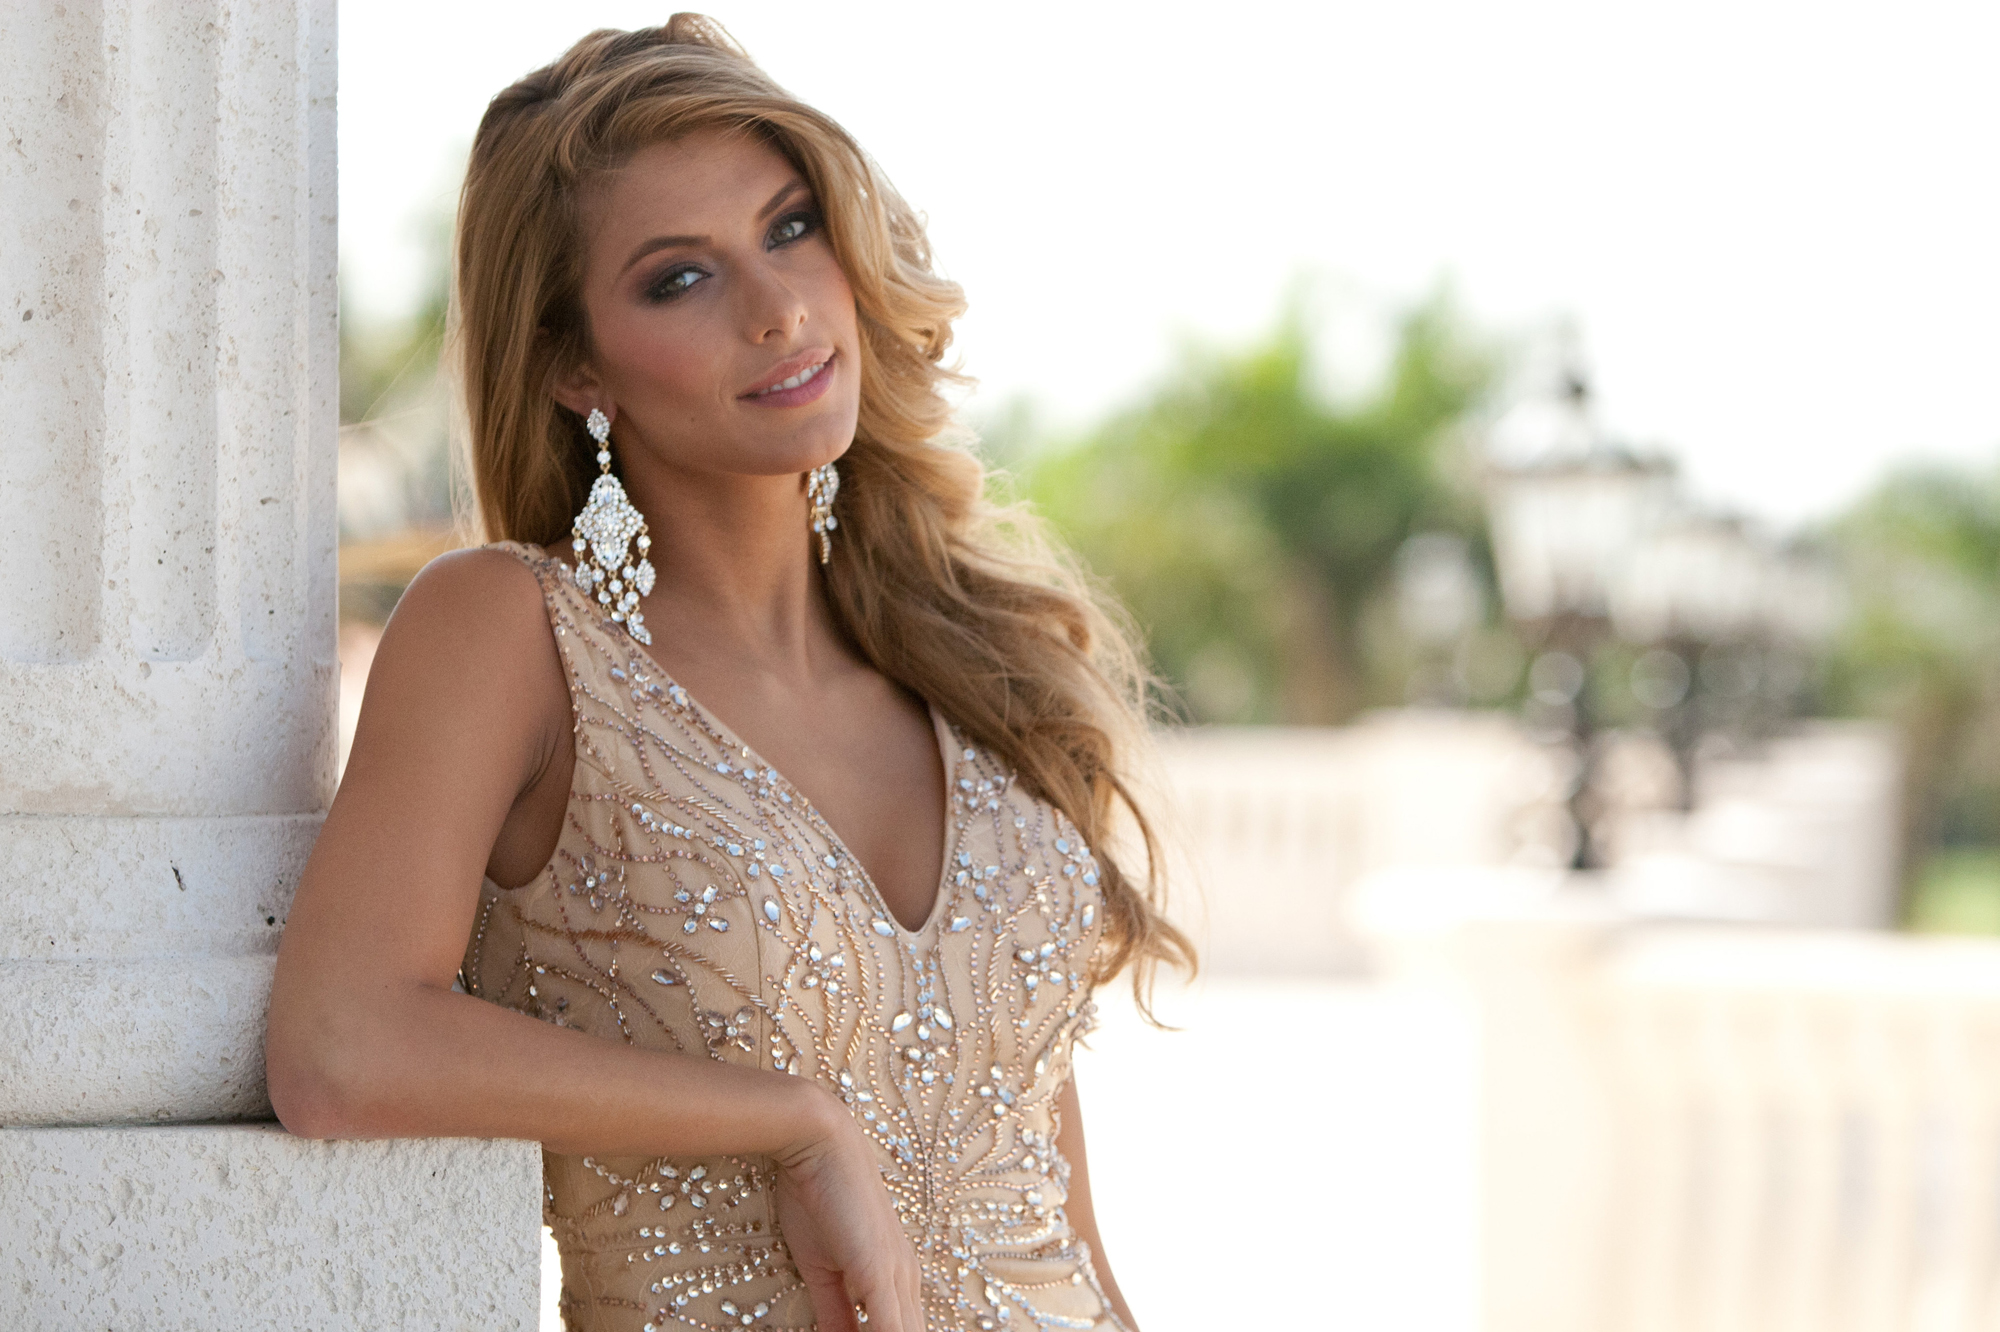 Jan 7, 2015 - Doral-Miami, Florida, U.S. - CAMILLE CERF, Miss France 2014, poses for photographs at the Trump National Doral Miami. The Miss Universe contestants are touring, filming, rehearsing and preparing to compete for the DIC Crown.